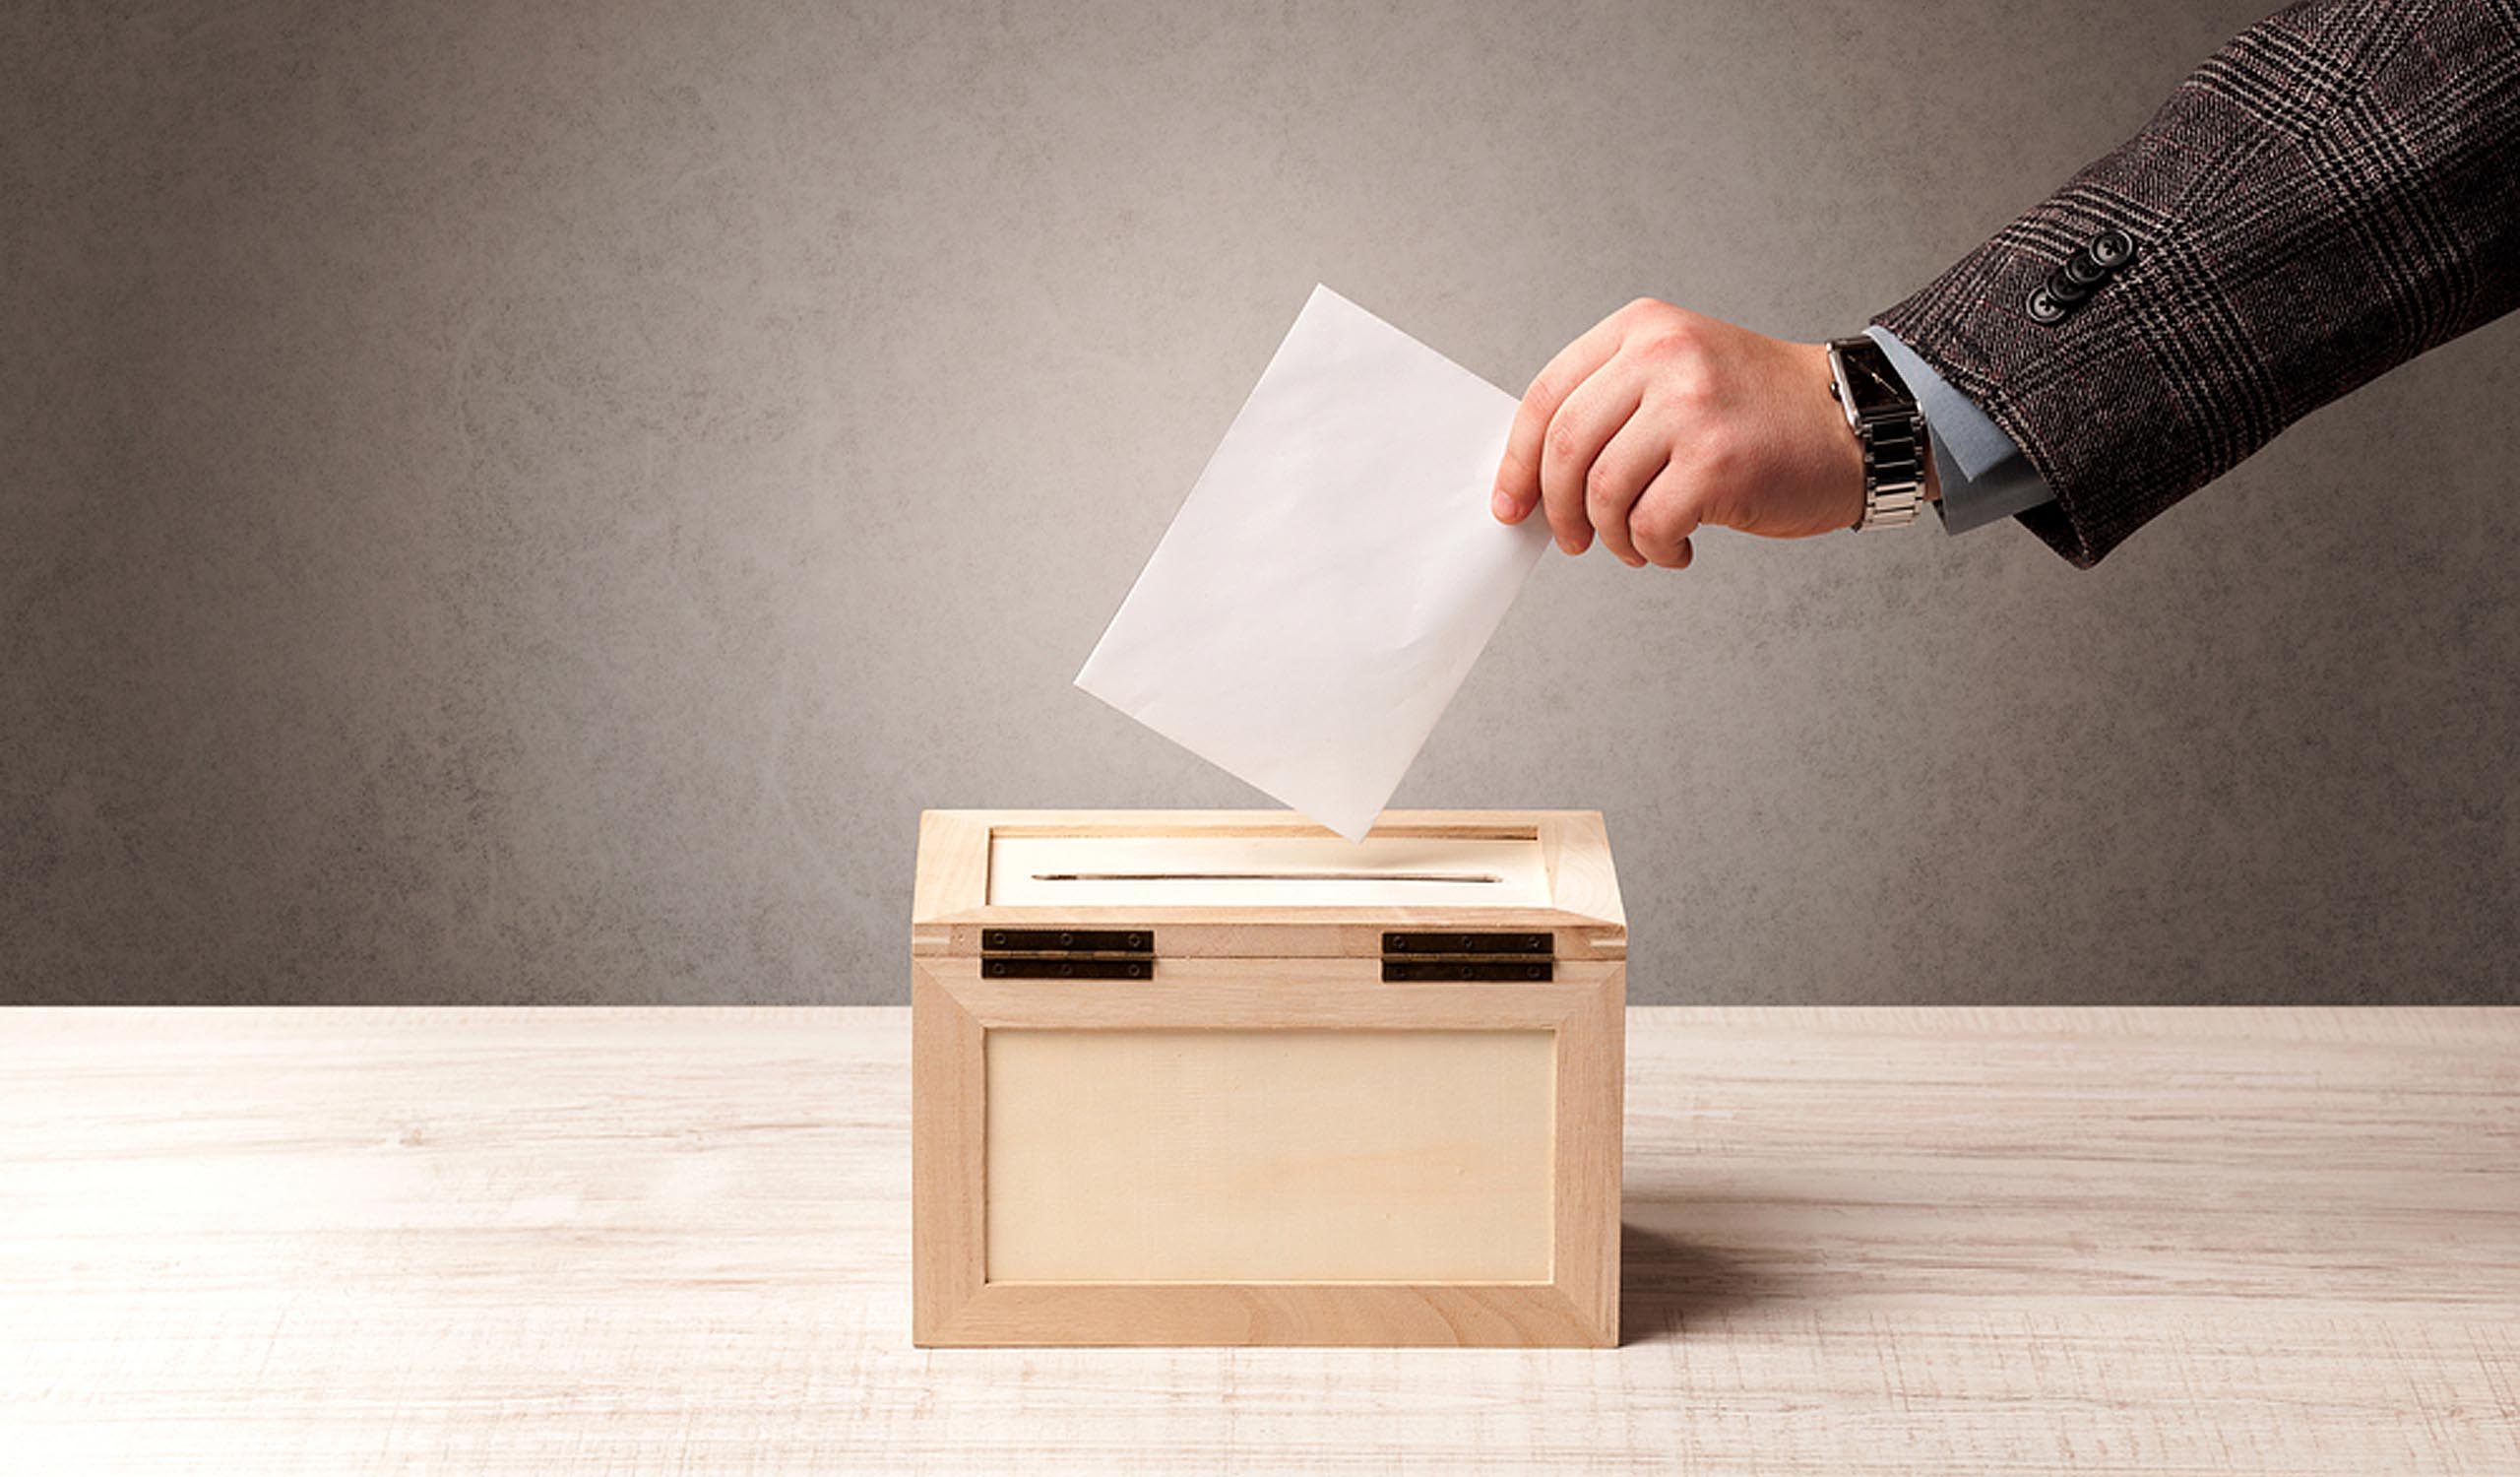 Ballot box with person casting vote on blank voting slip, brown wall background